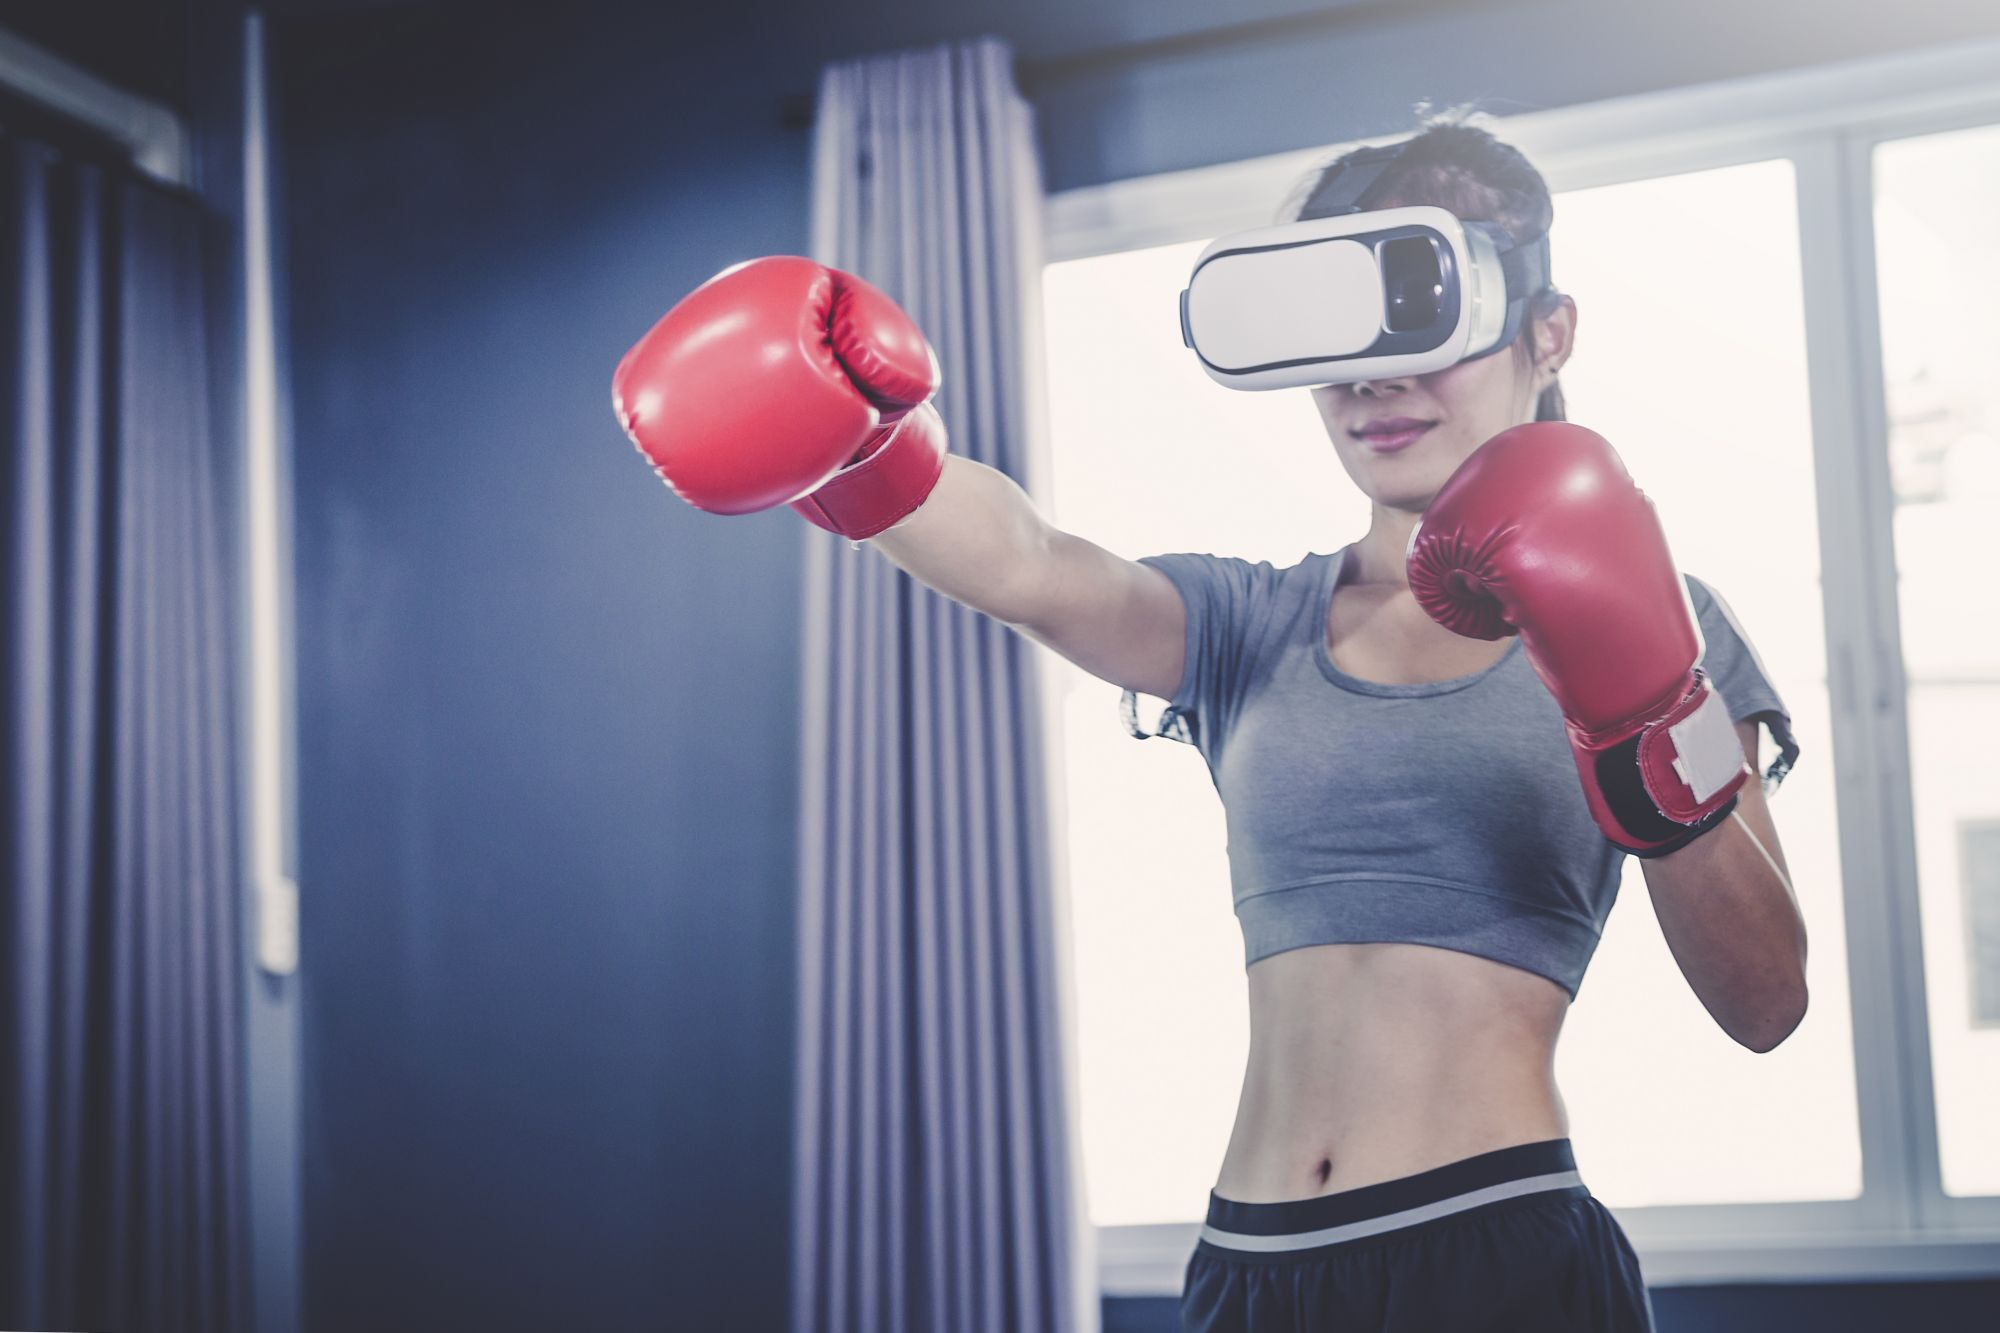 7 Fitness Video Games To Try For A Fun At Home Workout